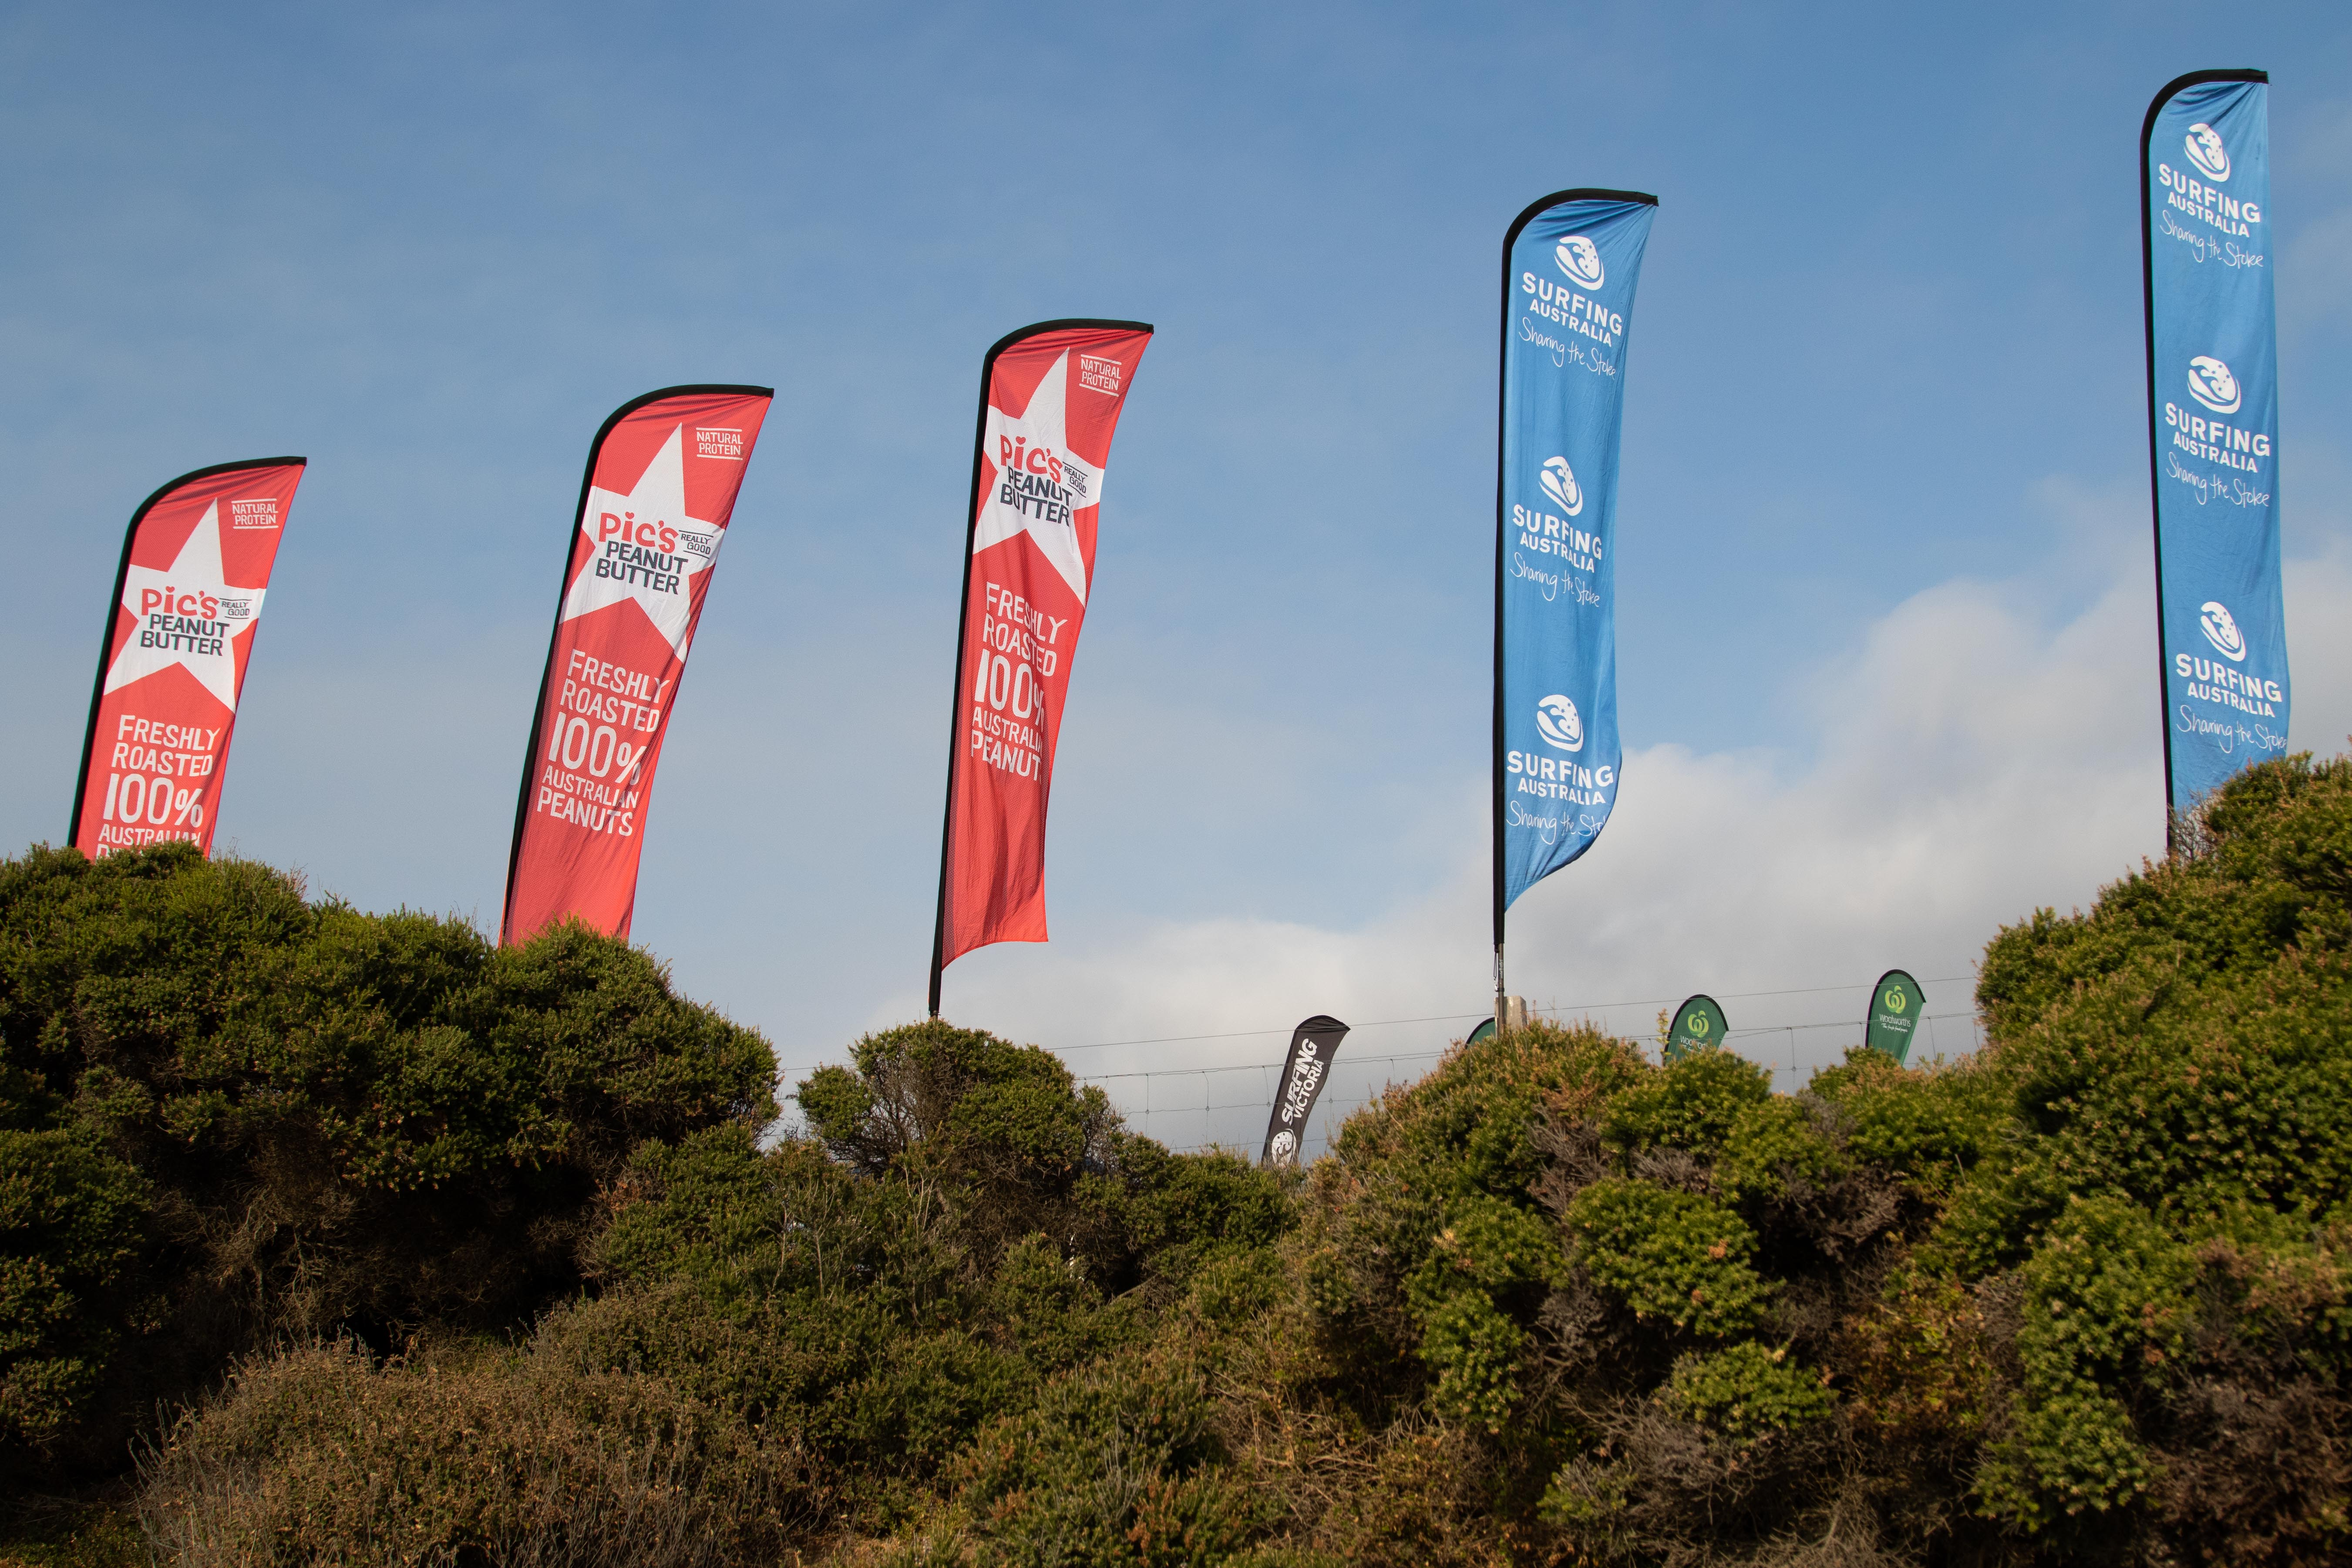 Banners Woolworths Surfer Grom Comp2019 Zl 007